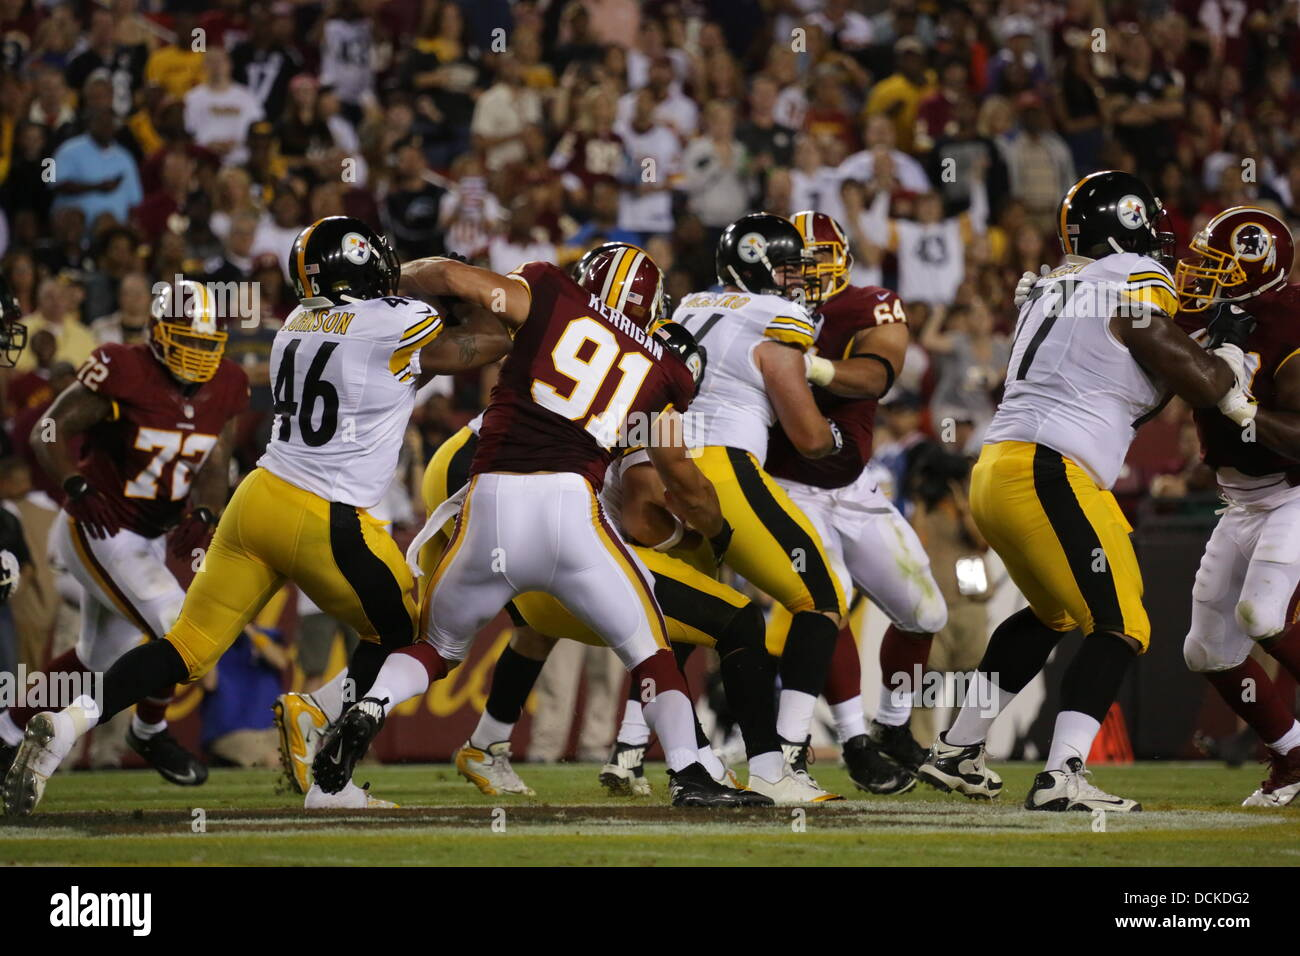 Landover, MD, USA. 19th Aug, 2013. August 19th 2013, Landover, MD, FedEx Field Washington Redskins take on the Pittsburgh - Stock Image